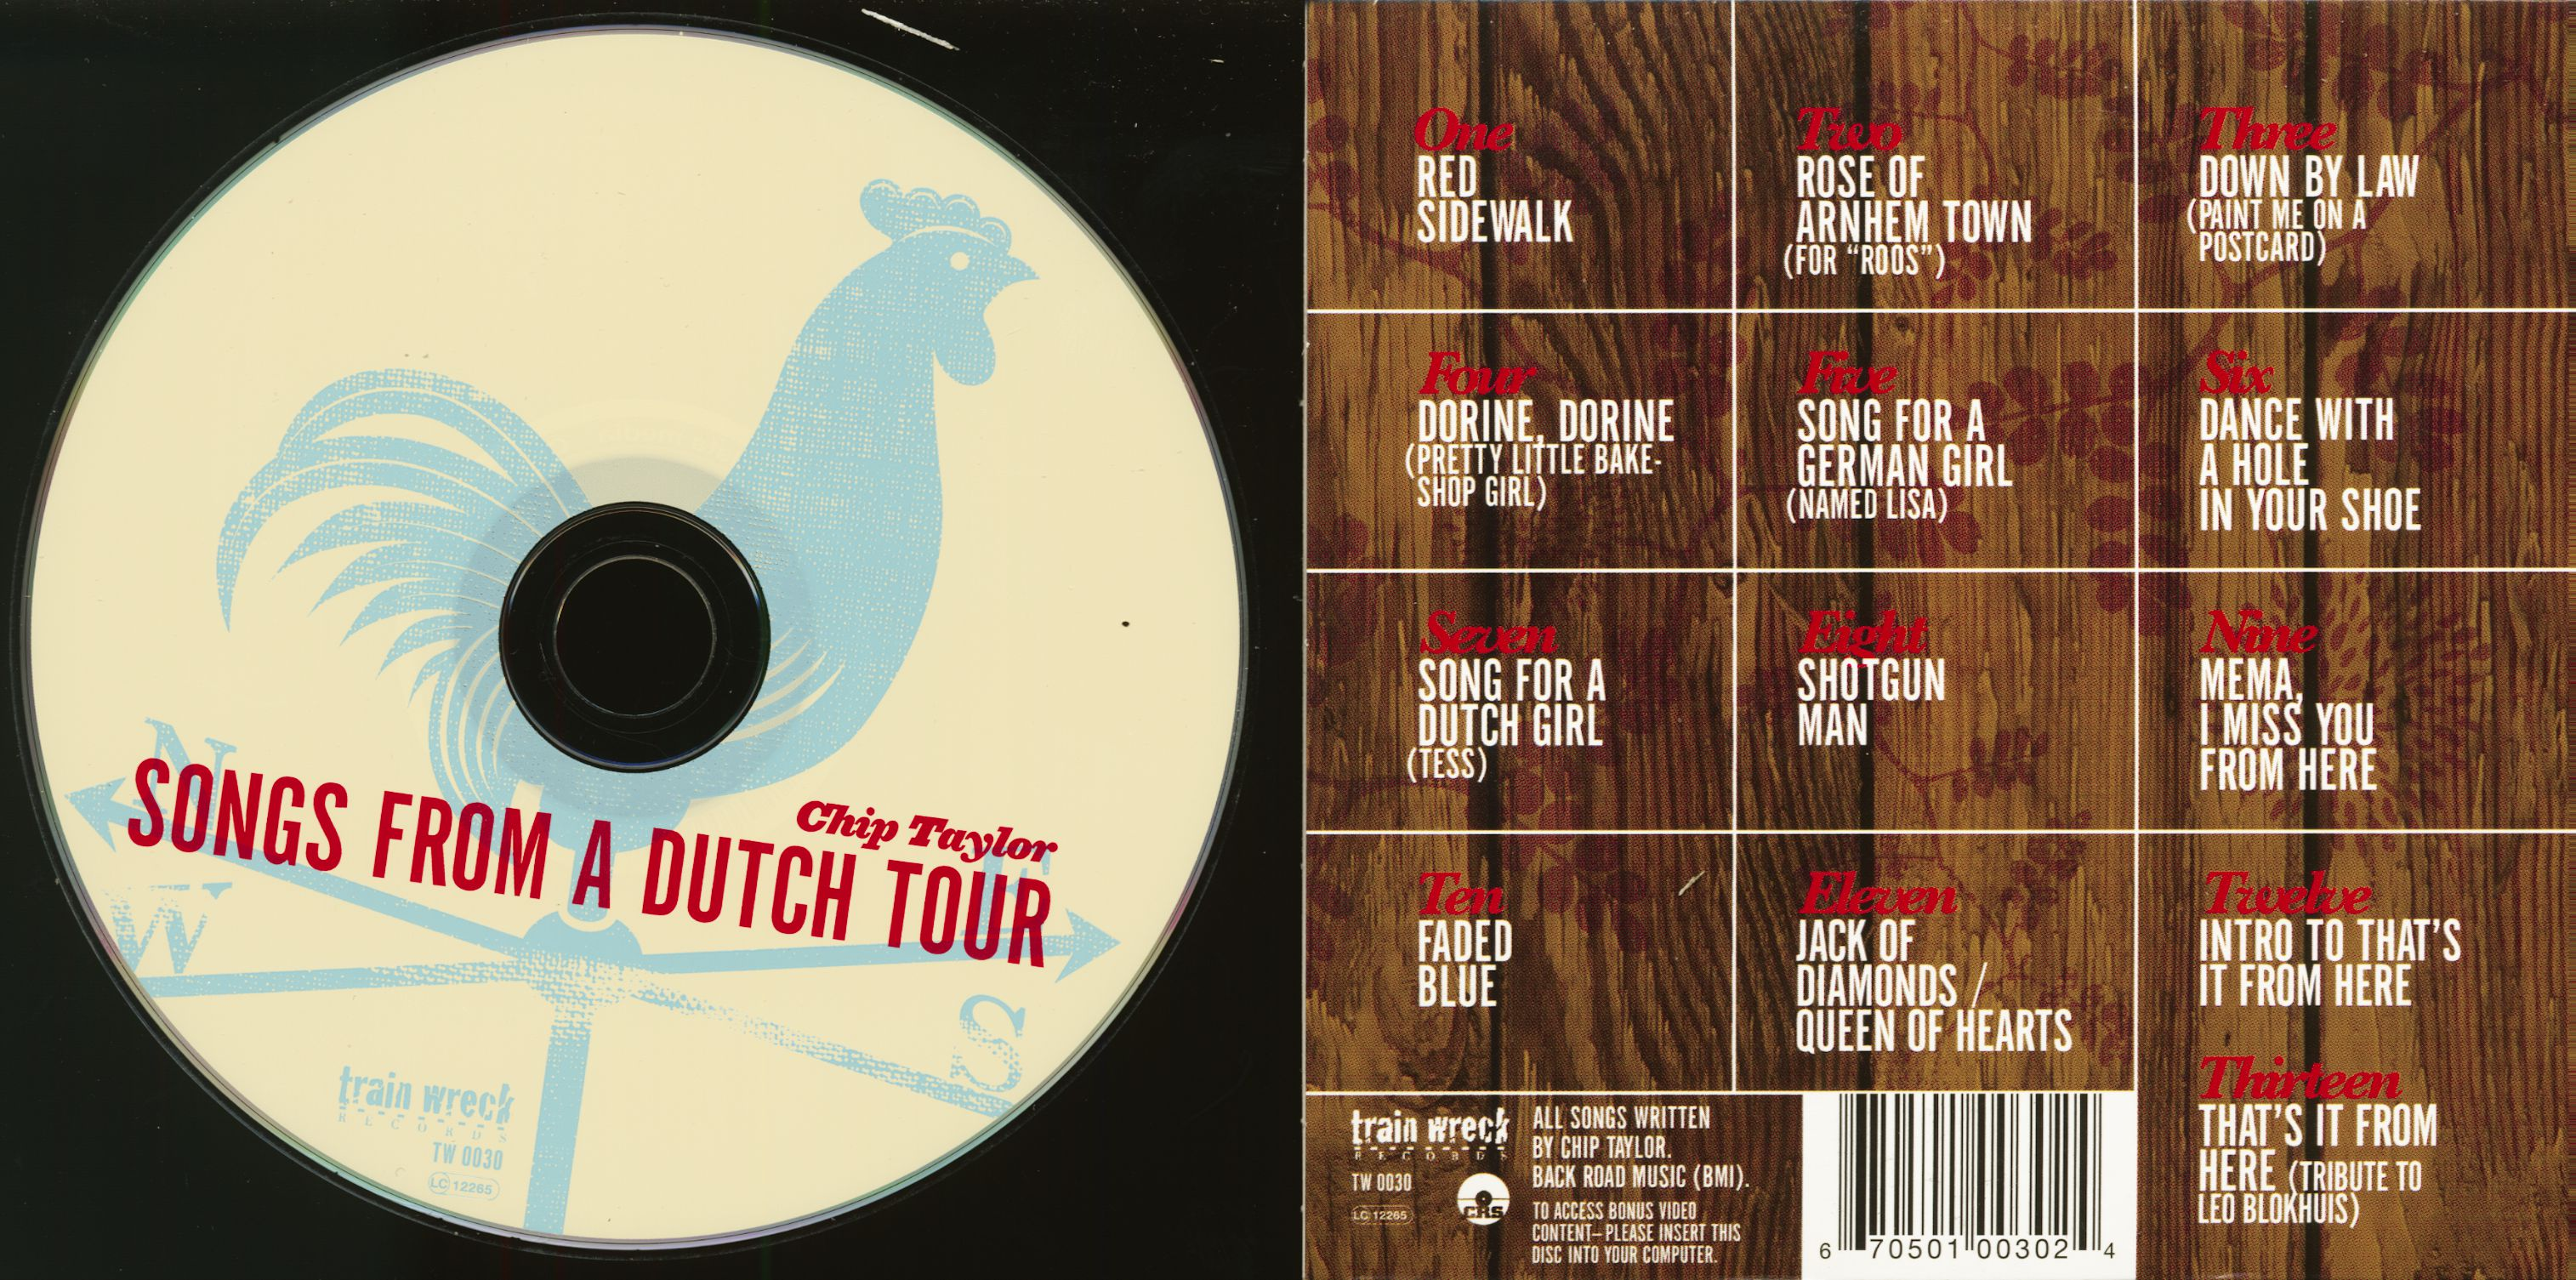 Chip Taylor Songs From A Dutch Tour (CD & Book)